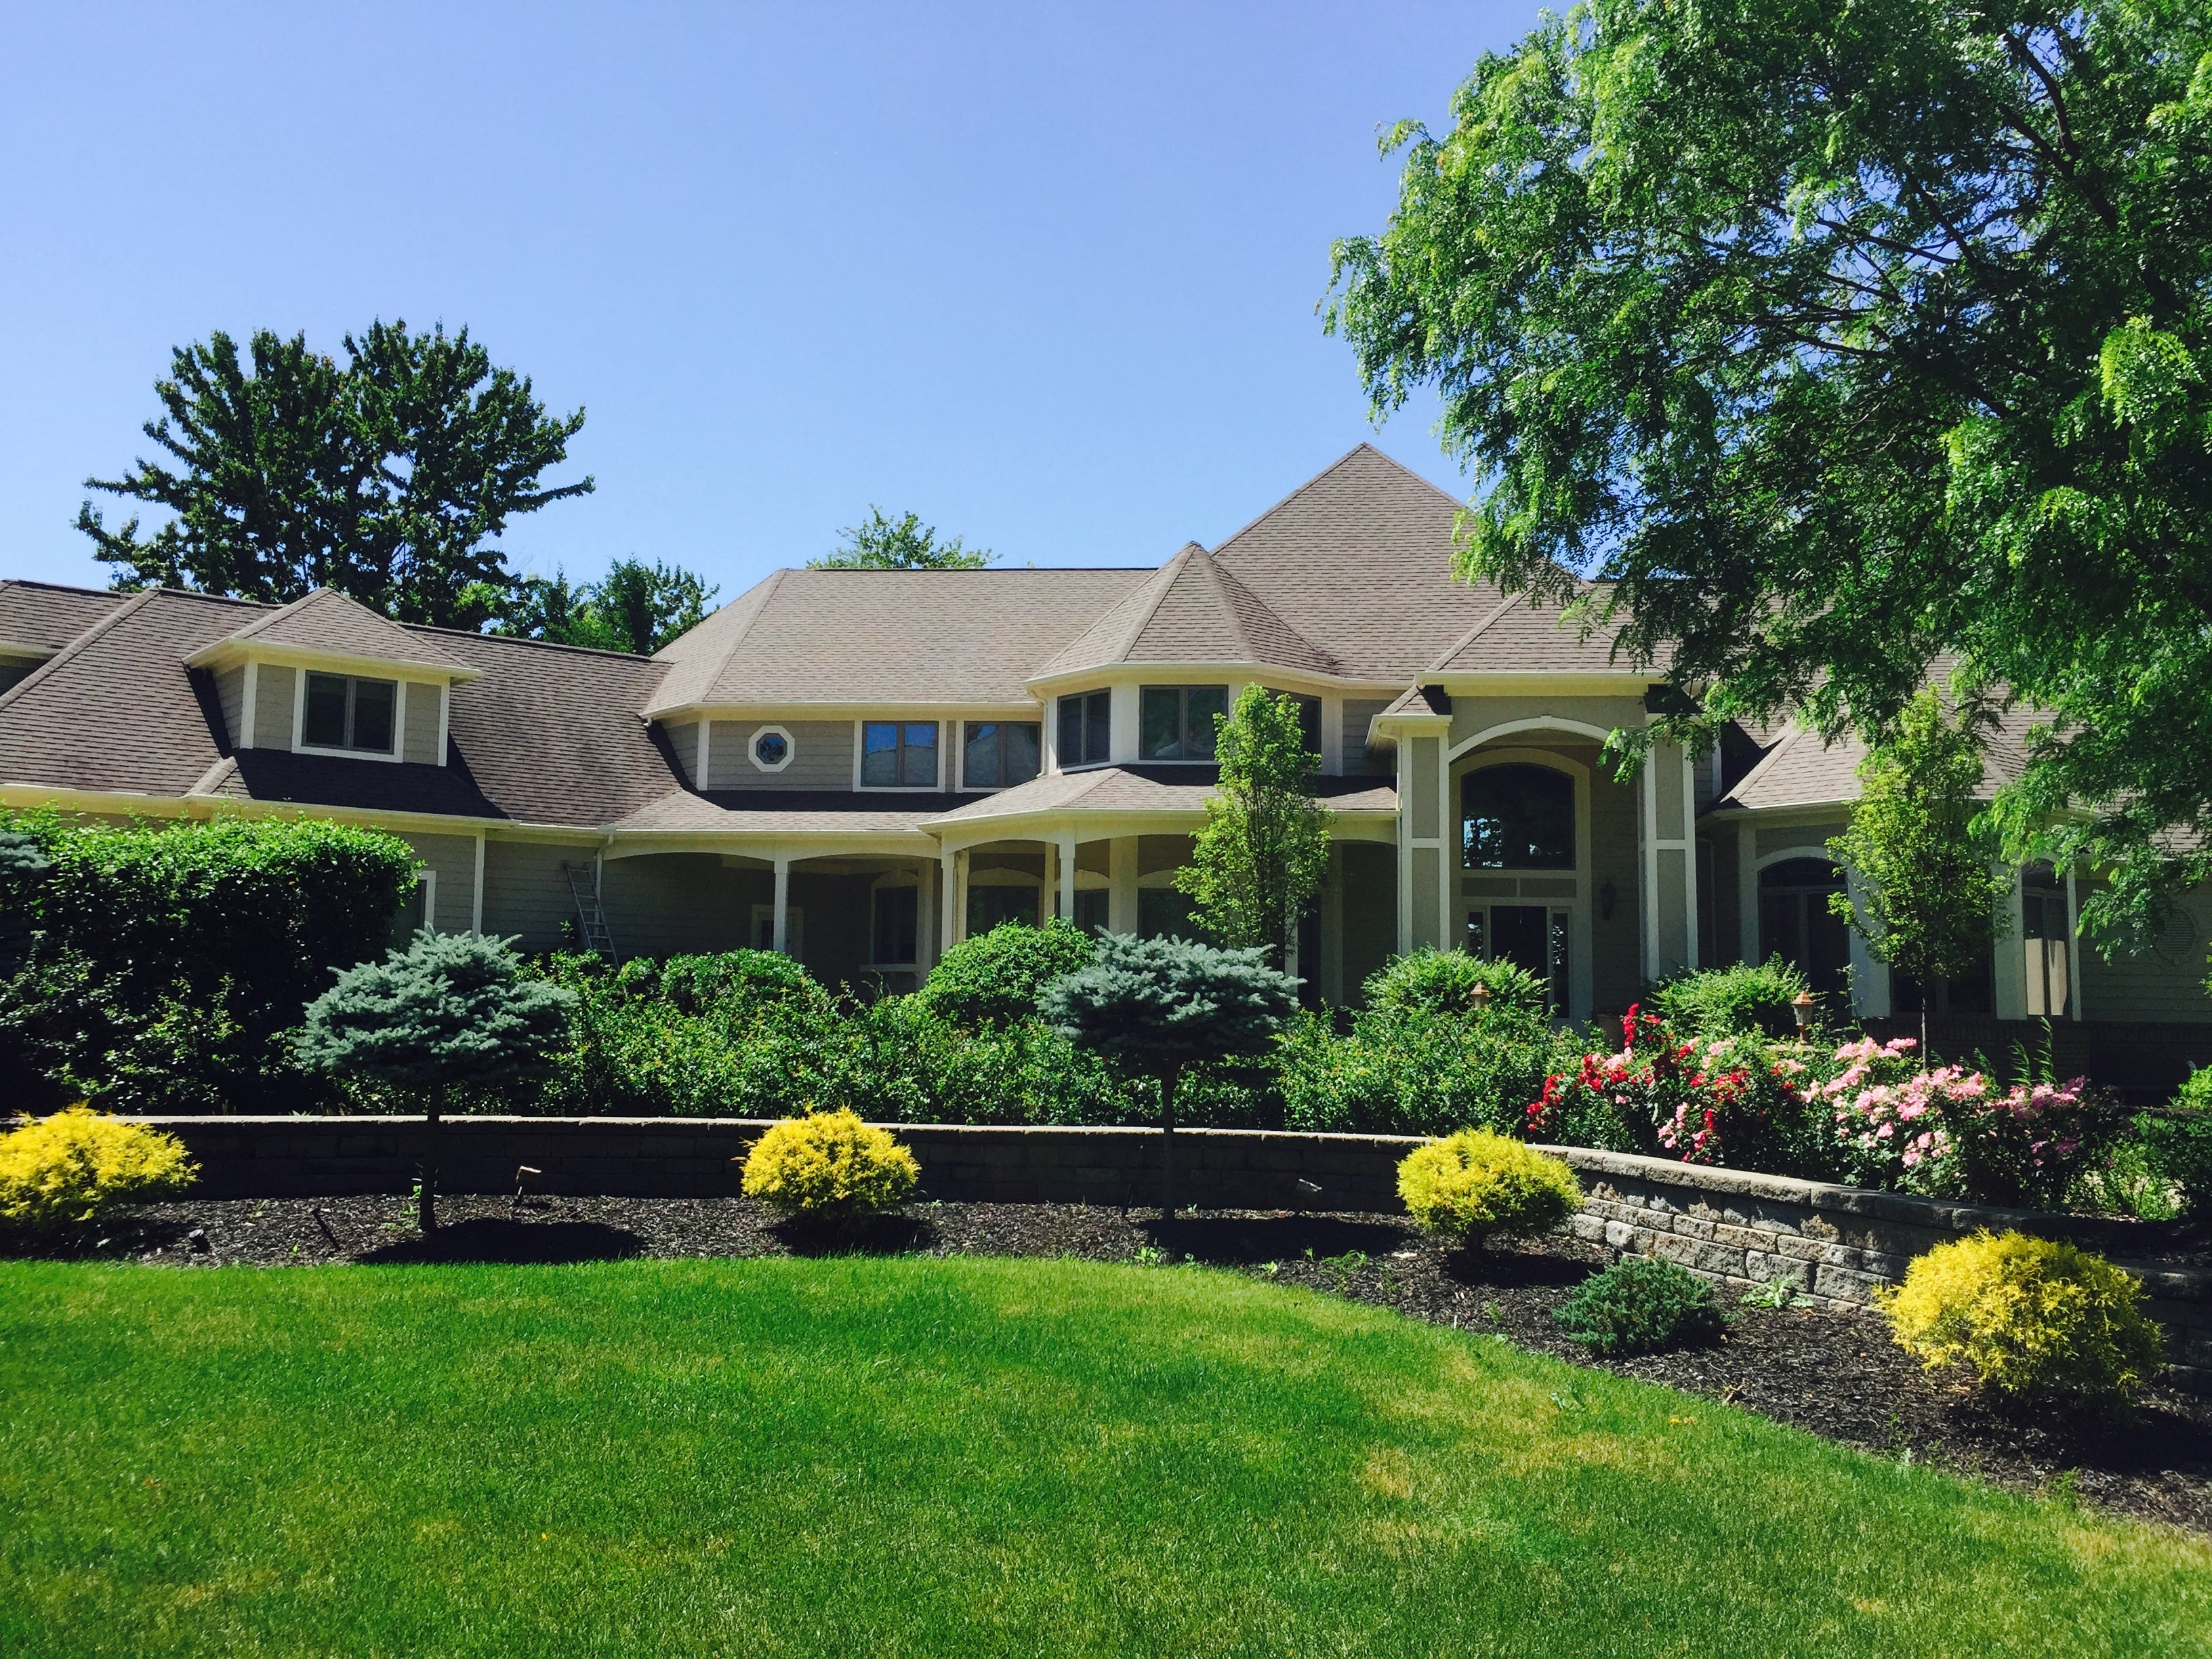 Chagrin Falls Interior Exterior Home Painting, Pressure washing, Window Cleaning Services at the Barrington Golf Course